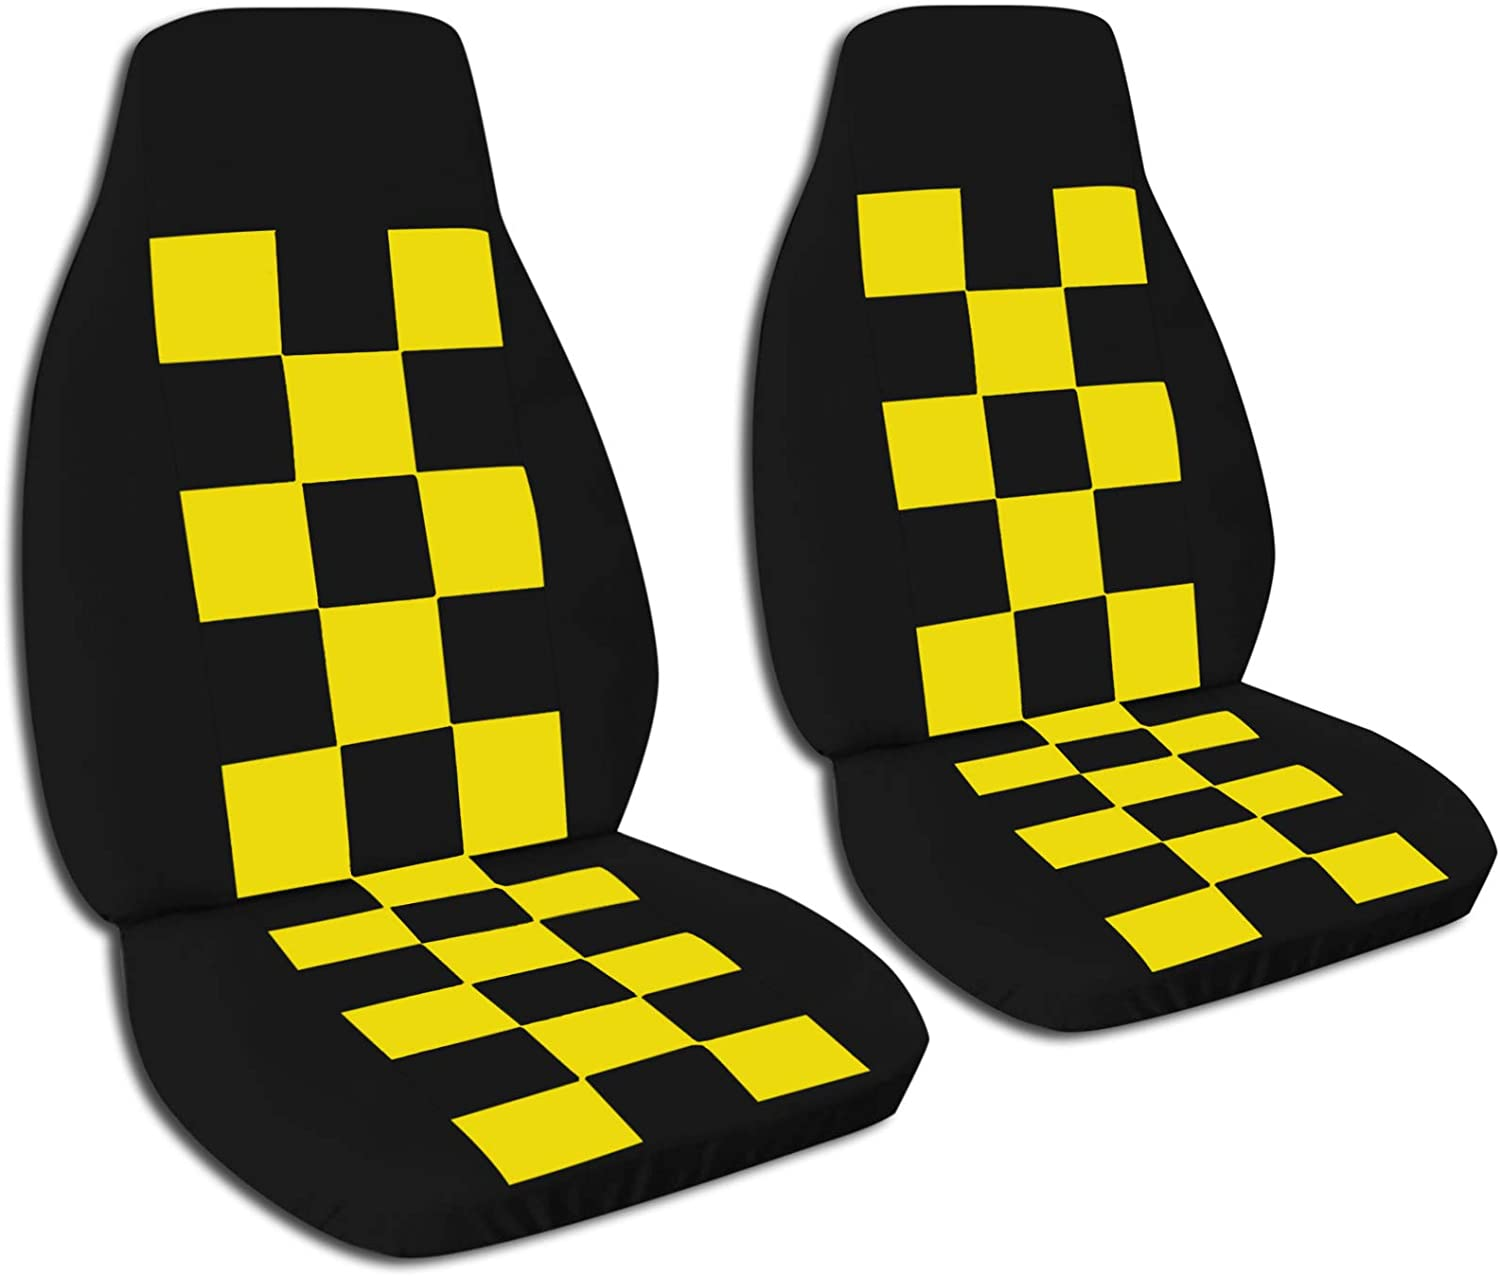 Totally Covers Checkered Car Seat Covers: Black & Yellow Checkers - Semi-Custom Fit - Front - Will Make Fit Any Car/Truck/Van/RV/SUV (21 Colors)